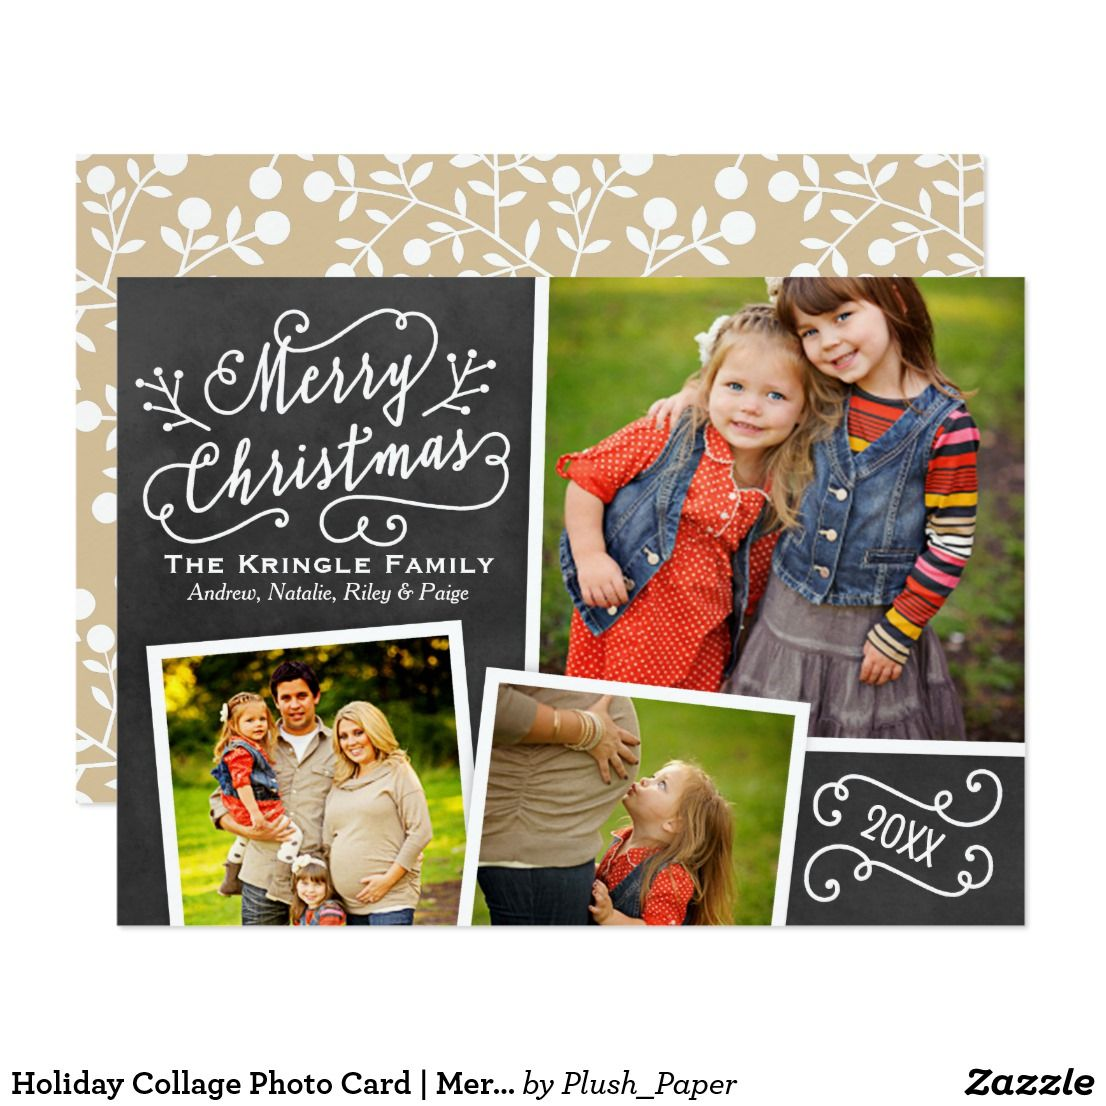 Holiday Collage Photo Card Merry Christmas Stylish Merry Christmas Photo Card Photo Collage Christmas Card Merry Christmas Card Photo Christmas Chalkboard